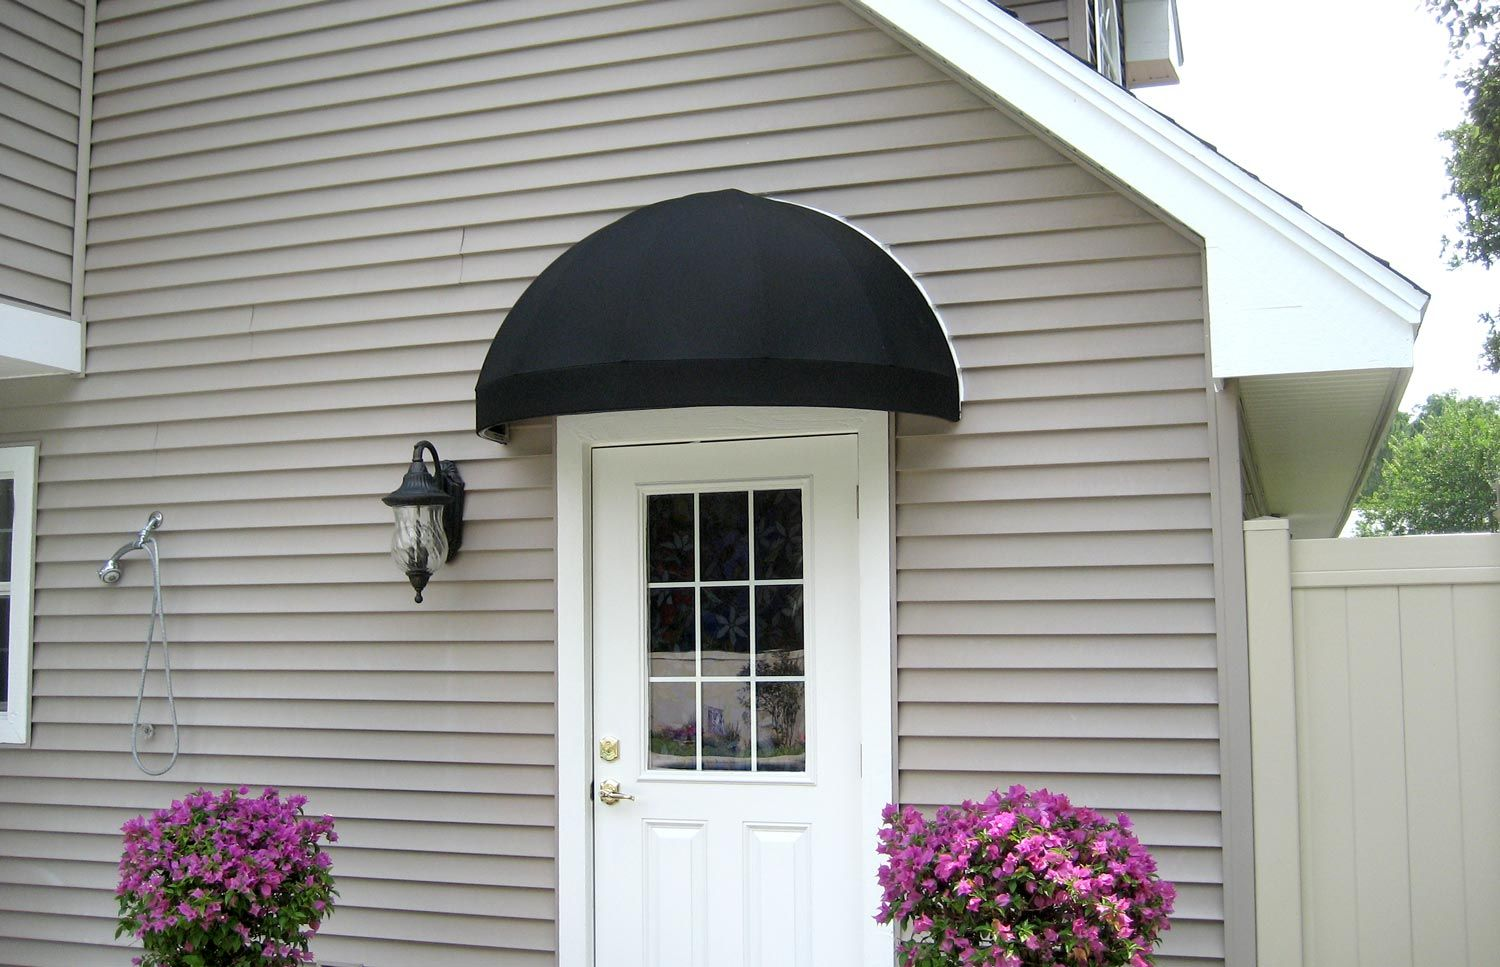 Image Result For House Front With Cloth Awnings Fabric Awning Awning Front Door